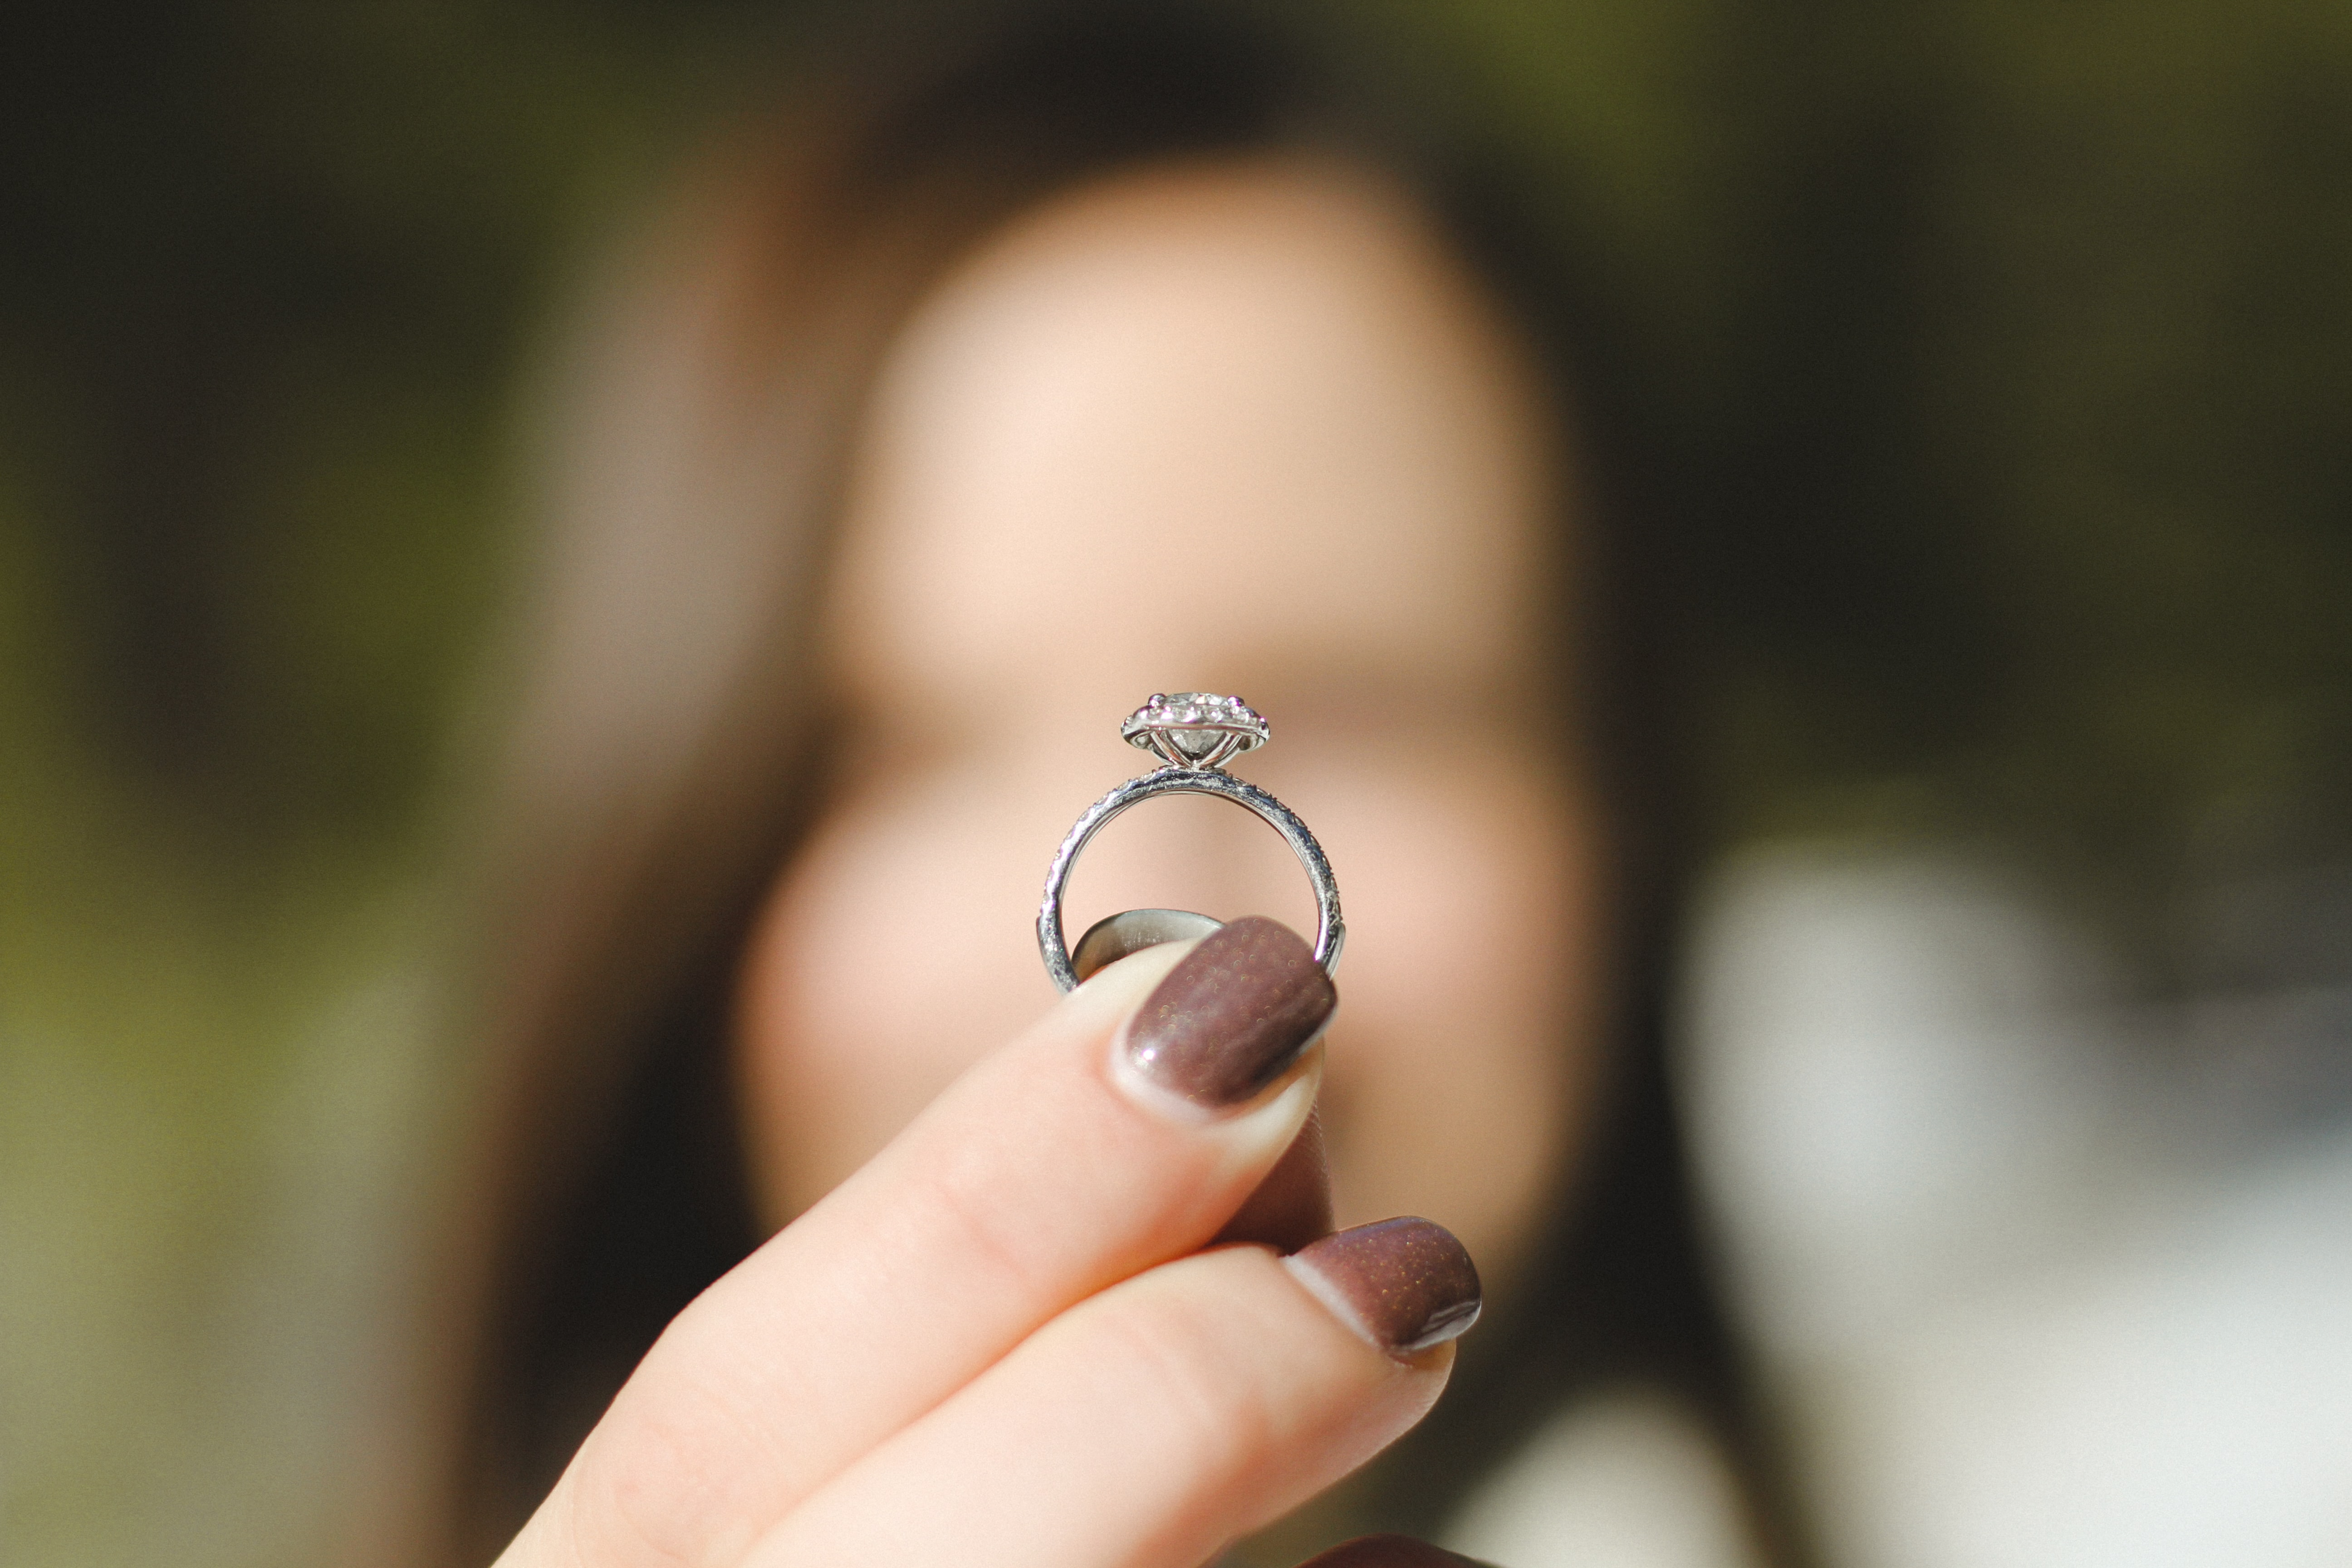 shallow focus photography of woman holding a diamond ring